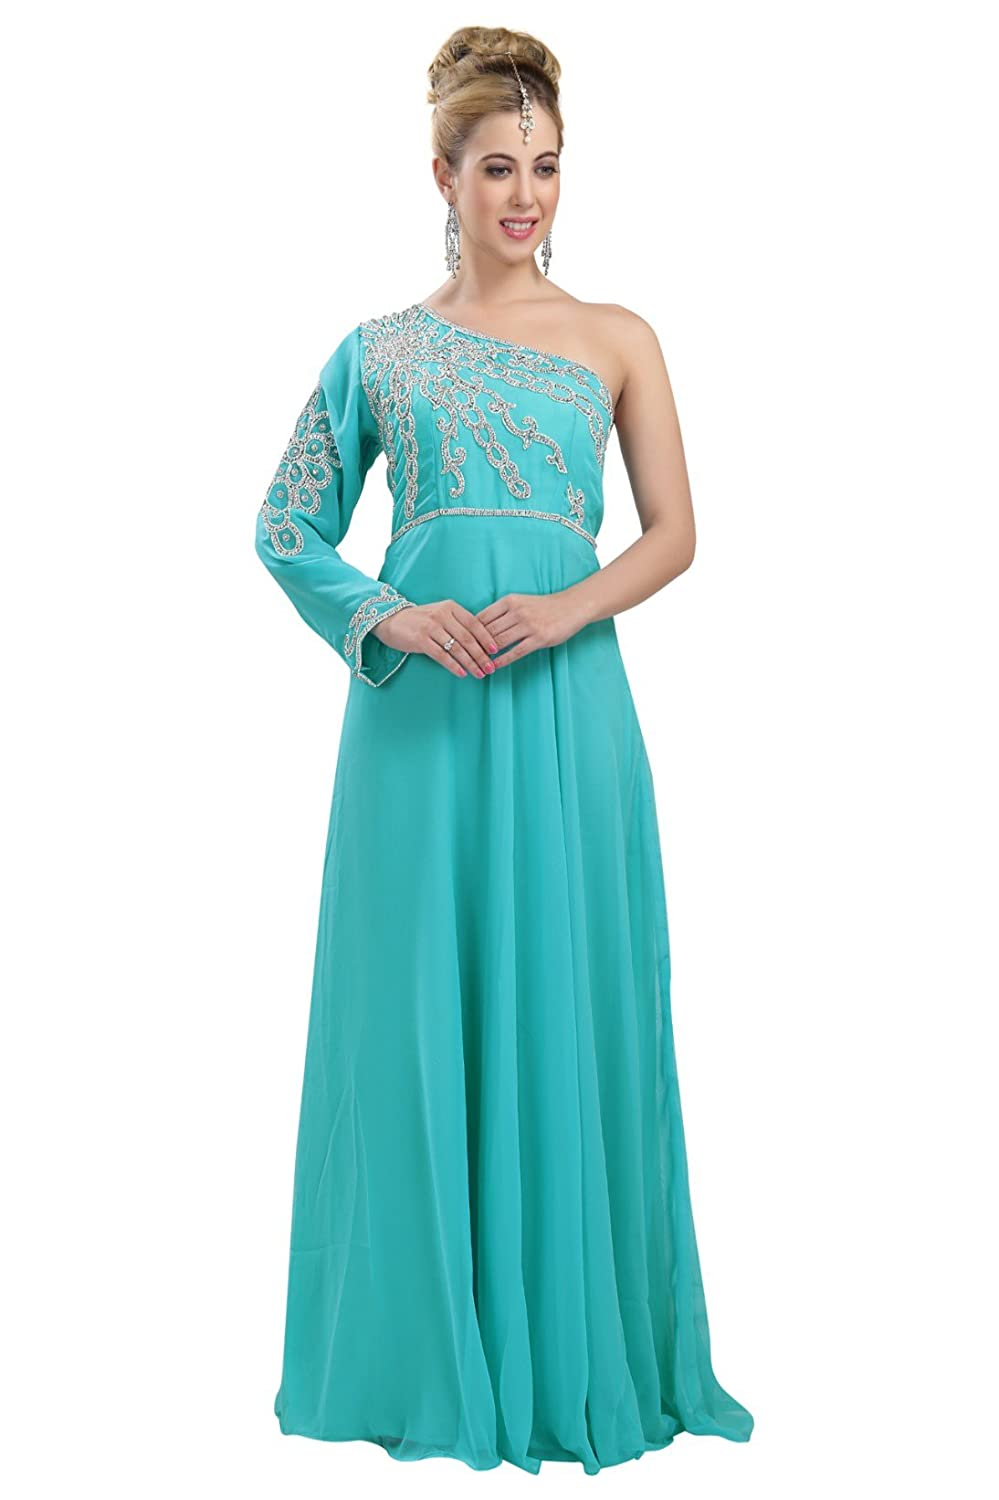 Enchanting Arabian Theme Party Dress Ensign - All Wedding Dresses ...